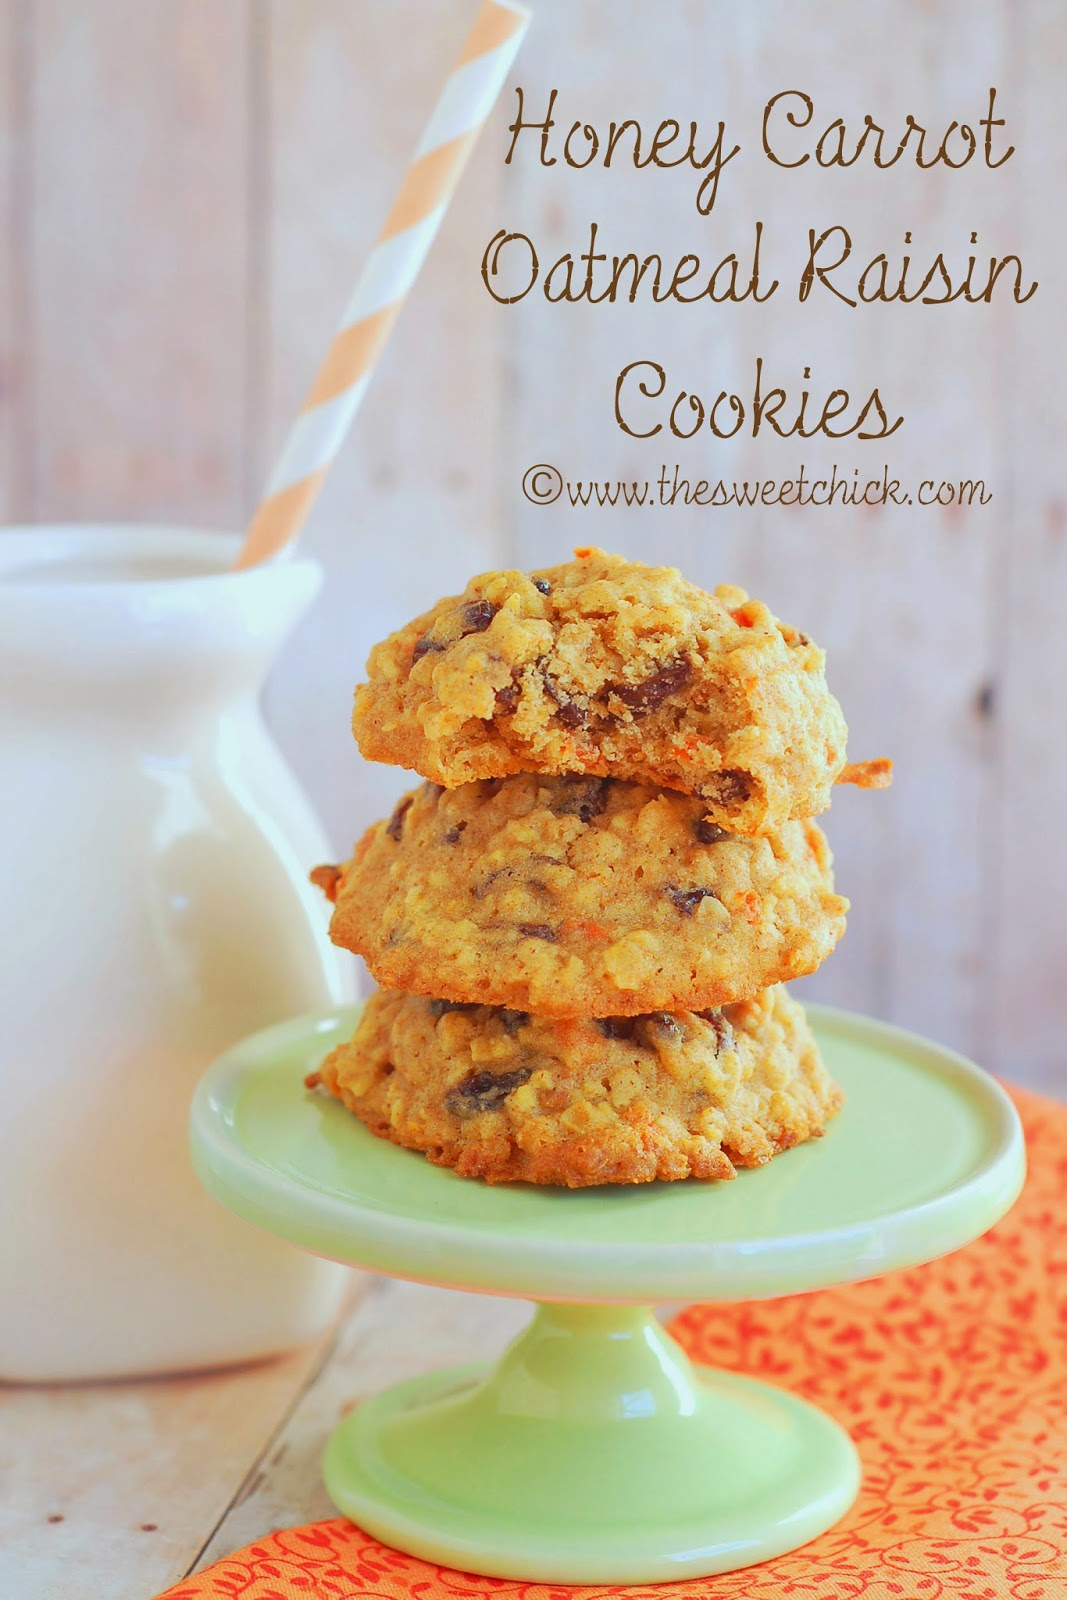 Honey Carrot Oatmeal Raisin Cookies by The Sweet Chick